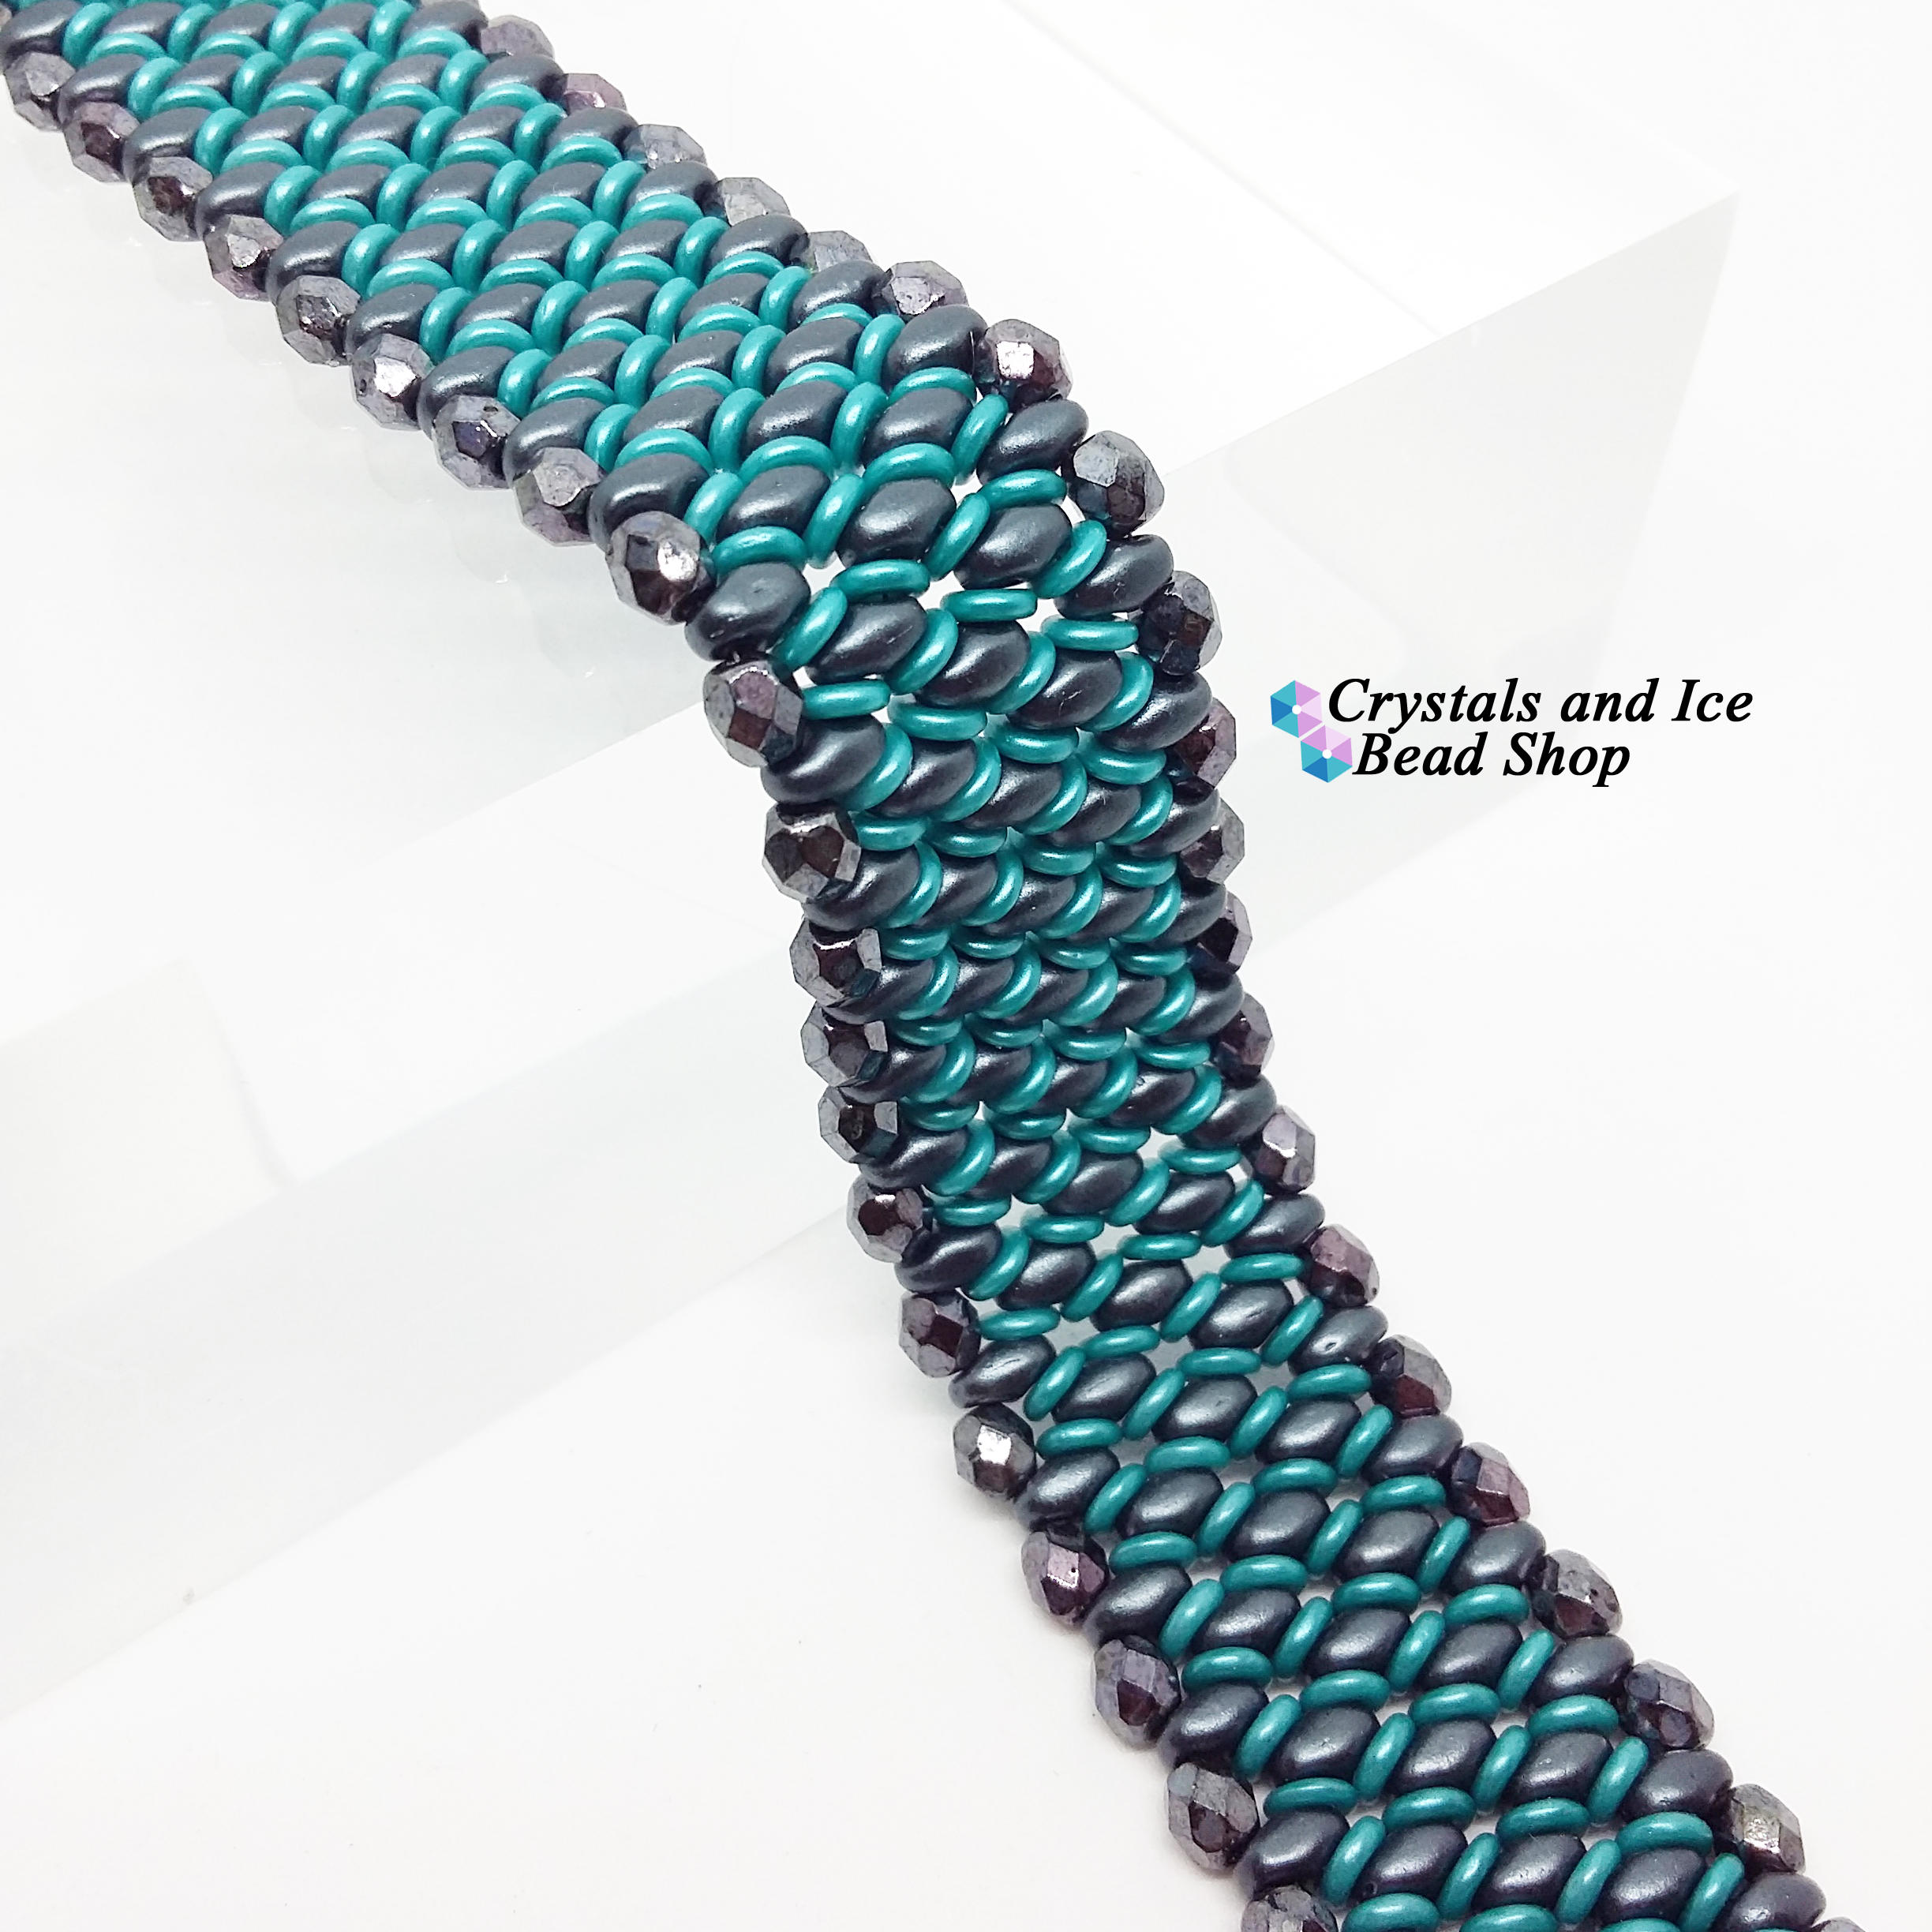 Mermaid Scales Bracelet Kit - Madison